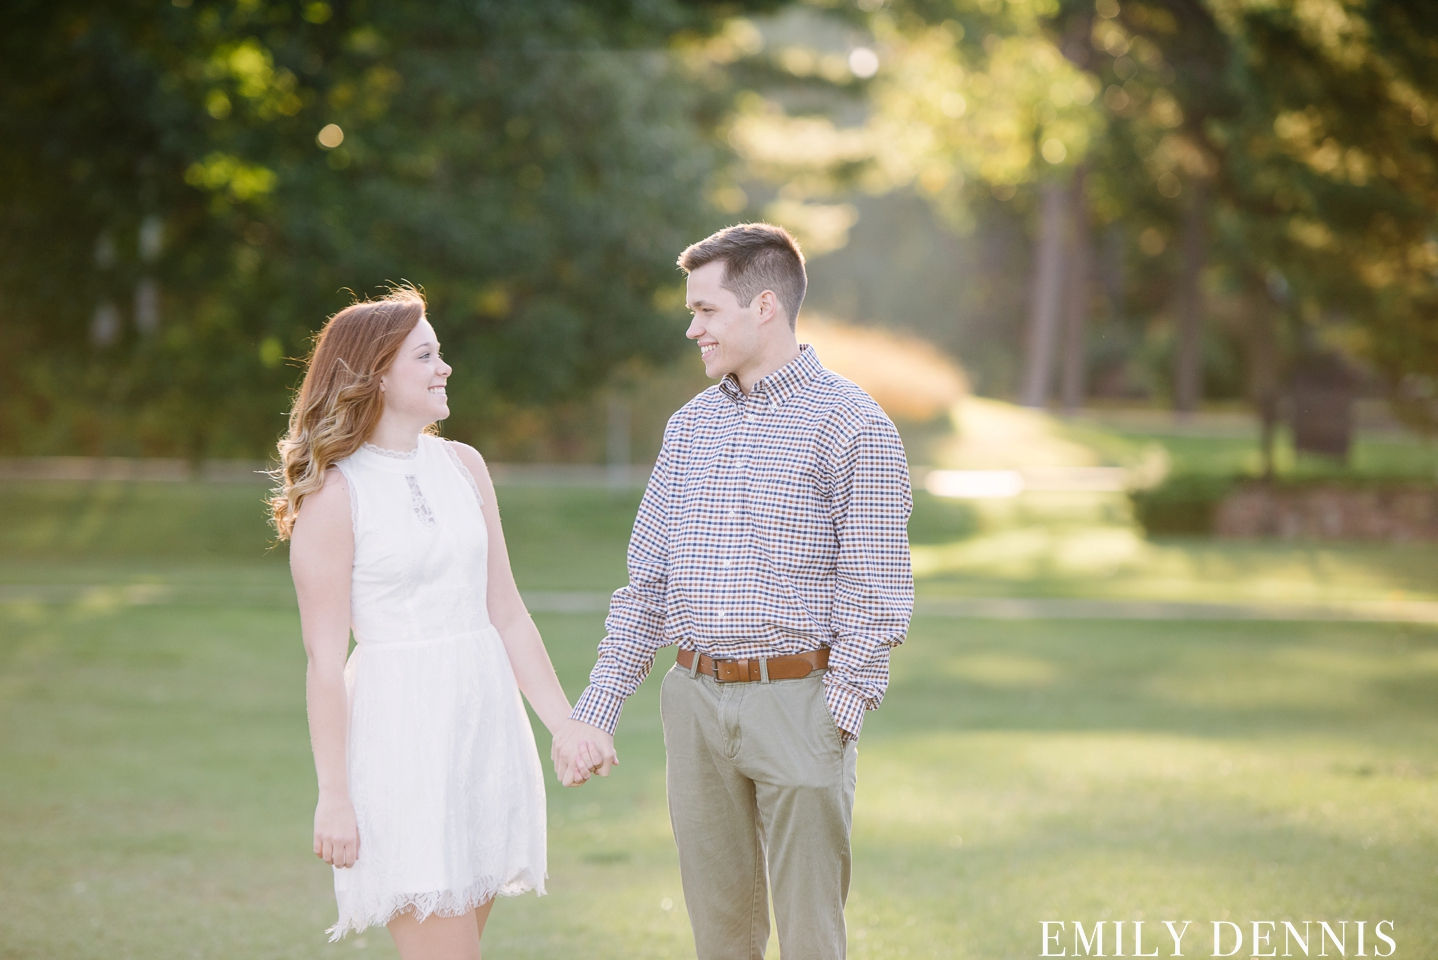 emilydennisphotography_3578